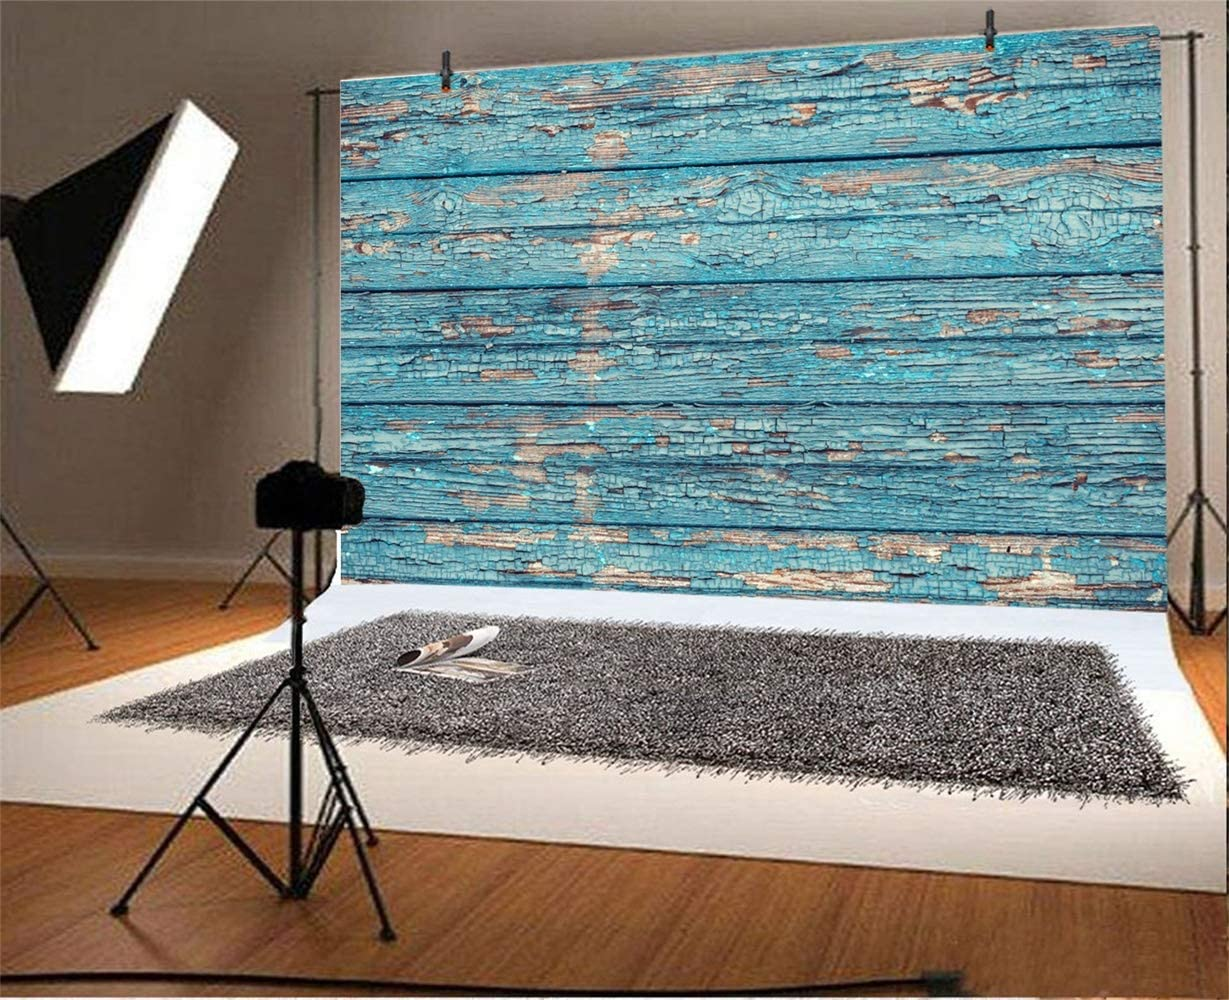 Polyester 10x6.5ft Grunge Peeled Blue Lateral-Cut Wood Texture Plank Photography Background Rustic Weathered Wooden Board Backdrop Children Adult Pets Artistic Portrait Shoot Studio Props